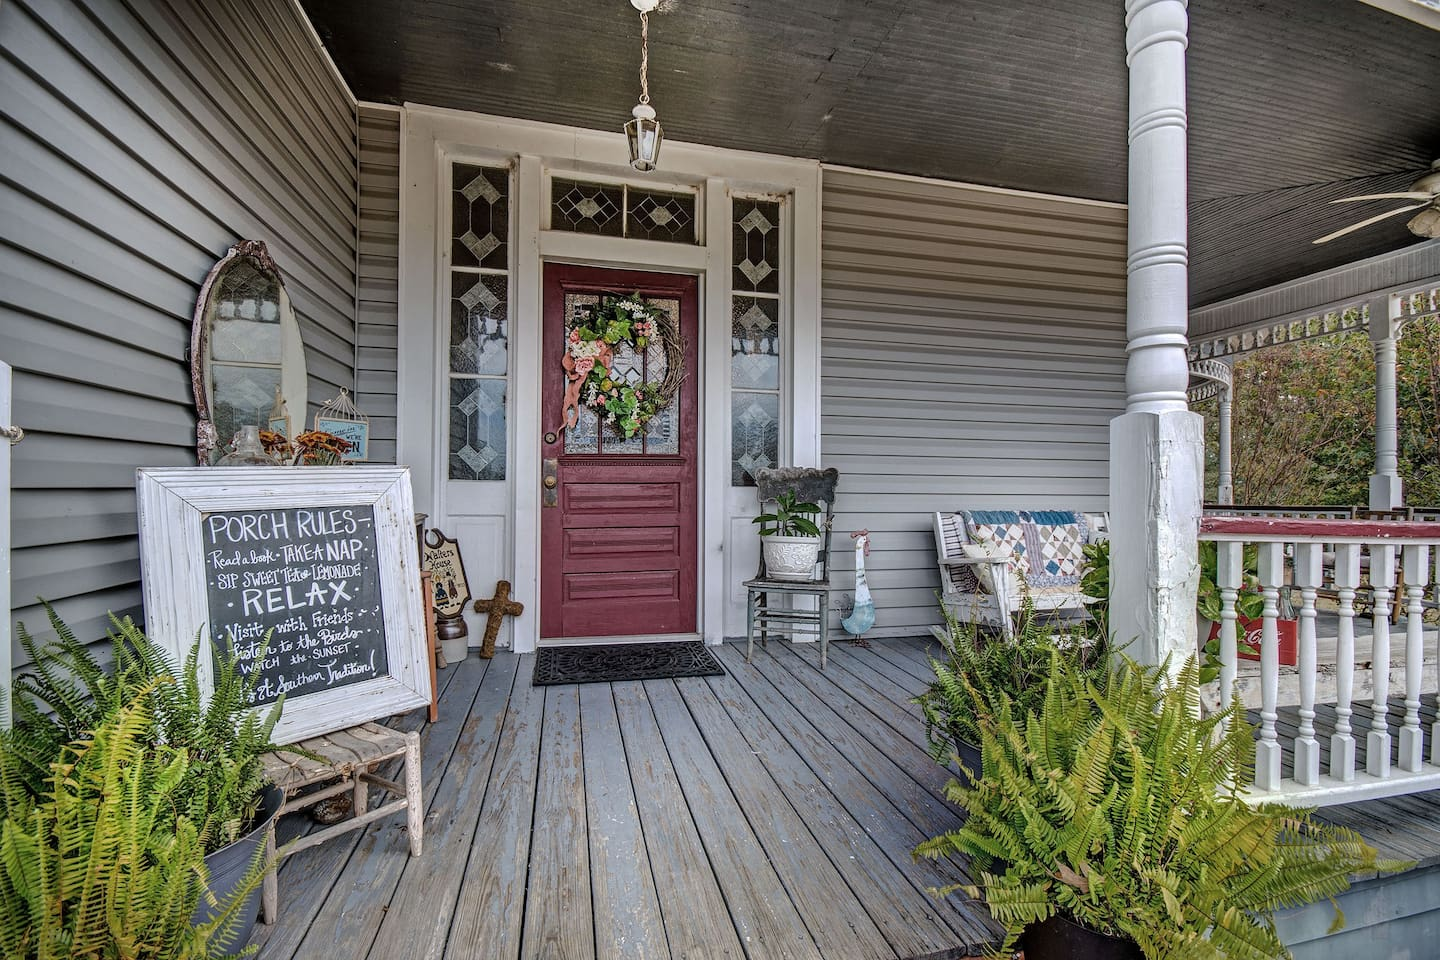 Mississippi scott county sebastopol - Clyde And Marie X27 S Bed And Breakfast Bed Breakfasts For Rent In Forest Mississippi United States